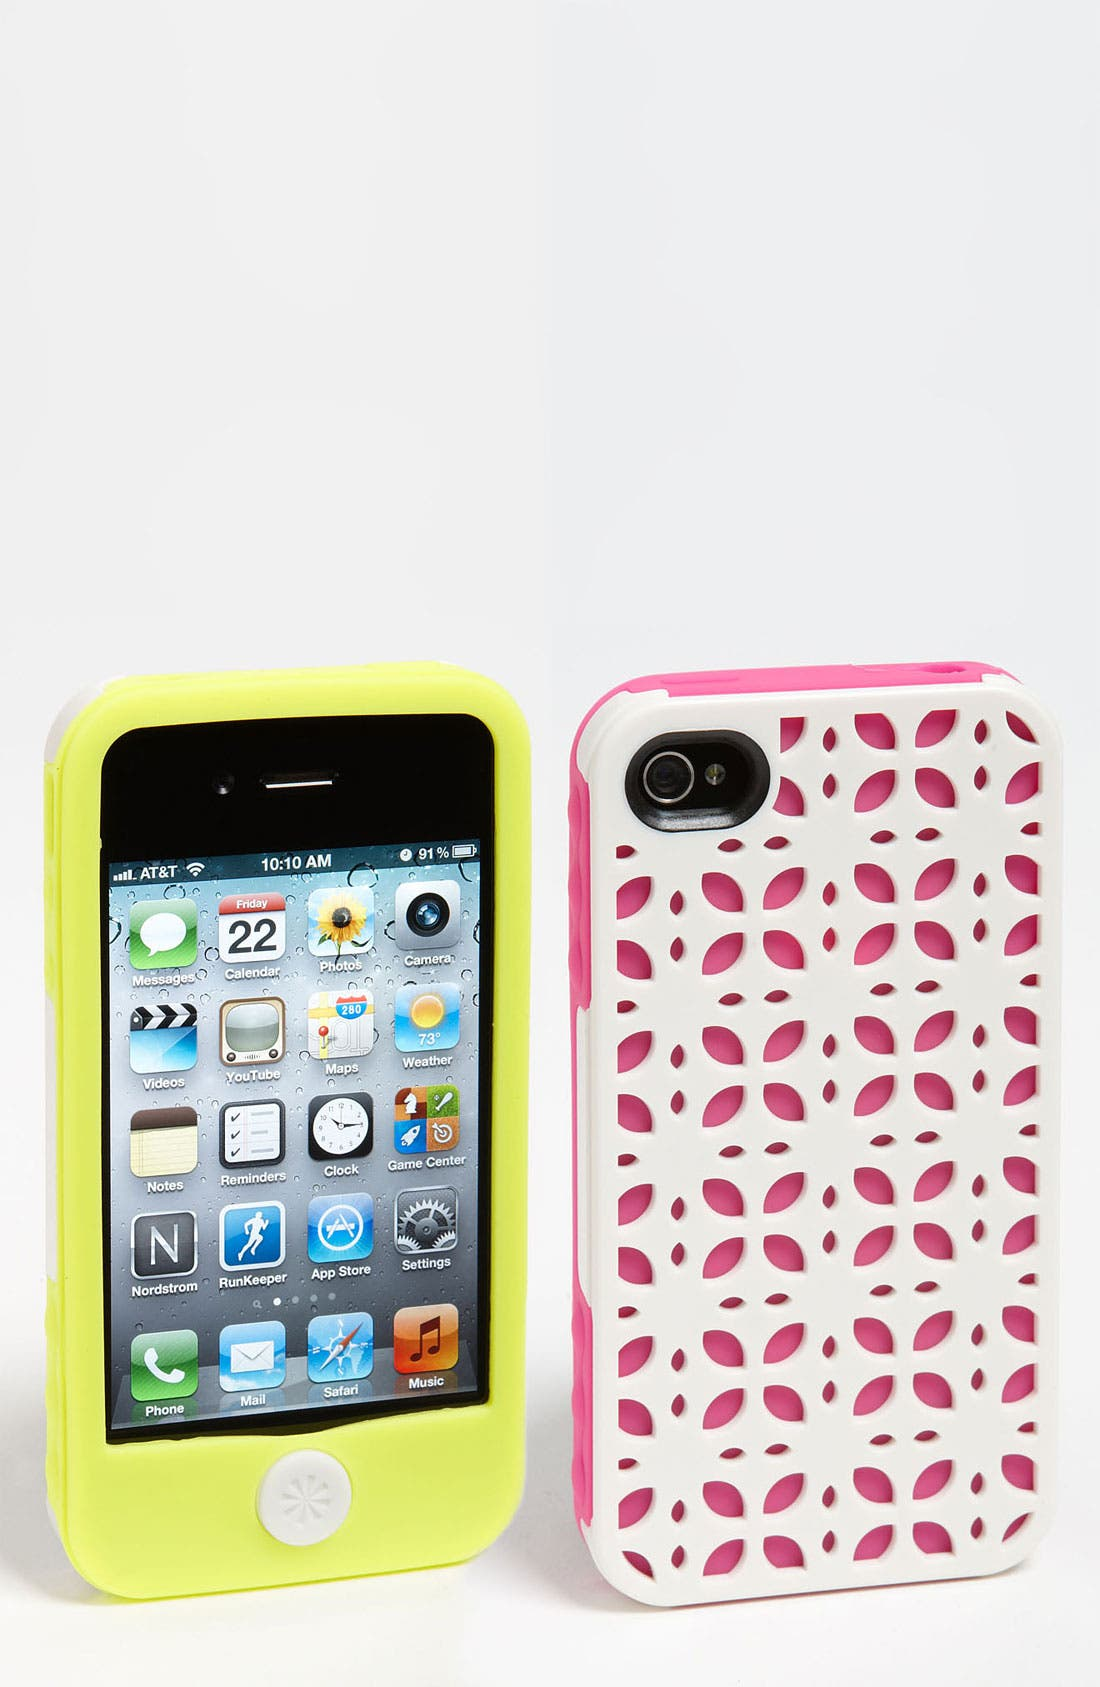 Alternate Image 1 Selected - Tech Candy 'New York' iPhone 4 & 4S Silicone Case Set